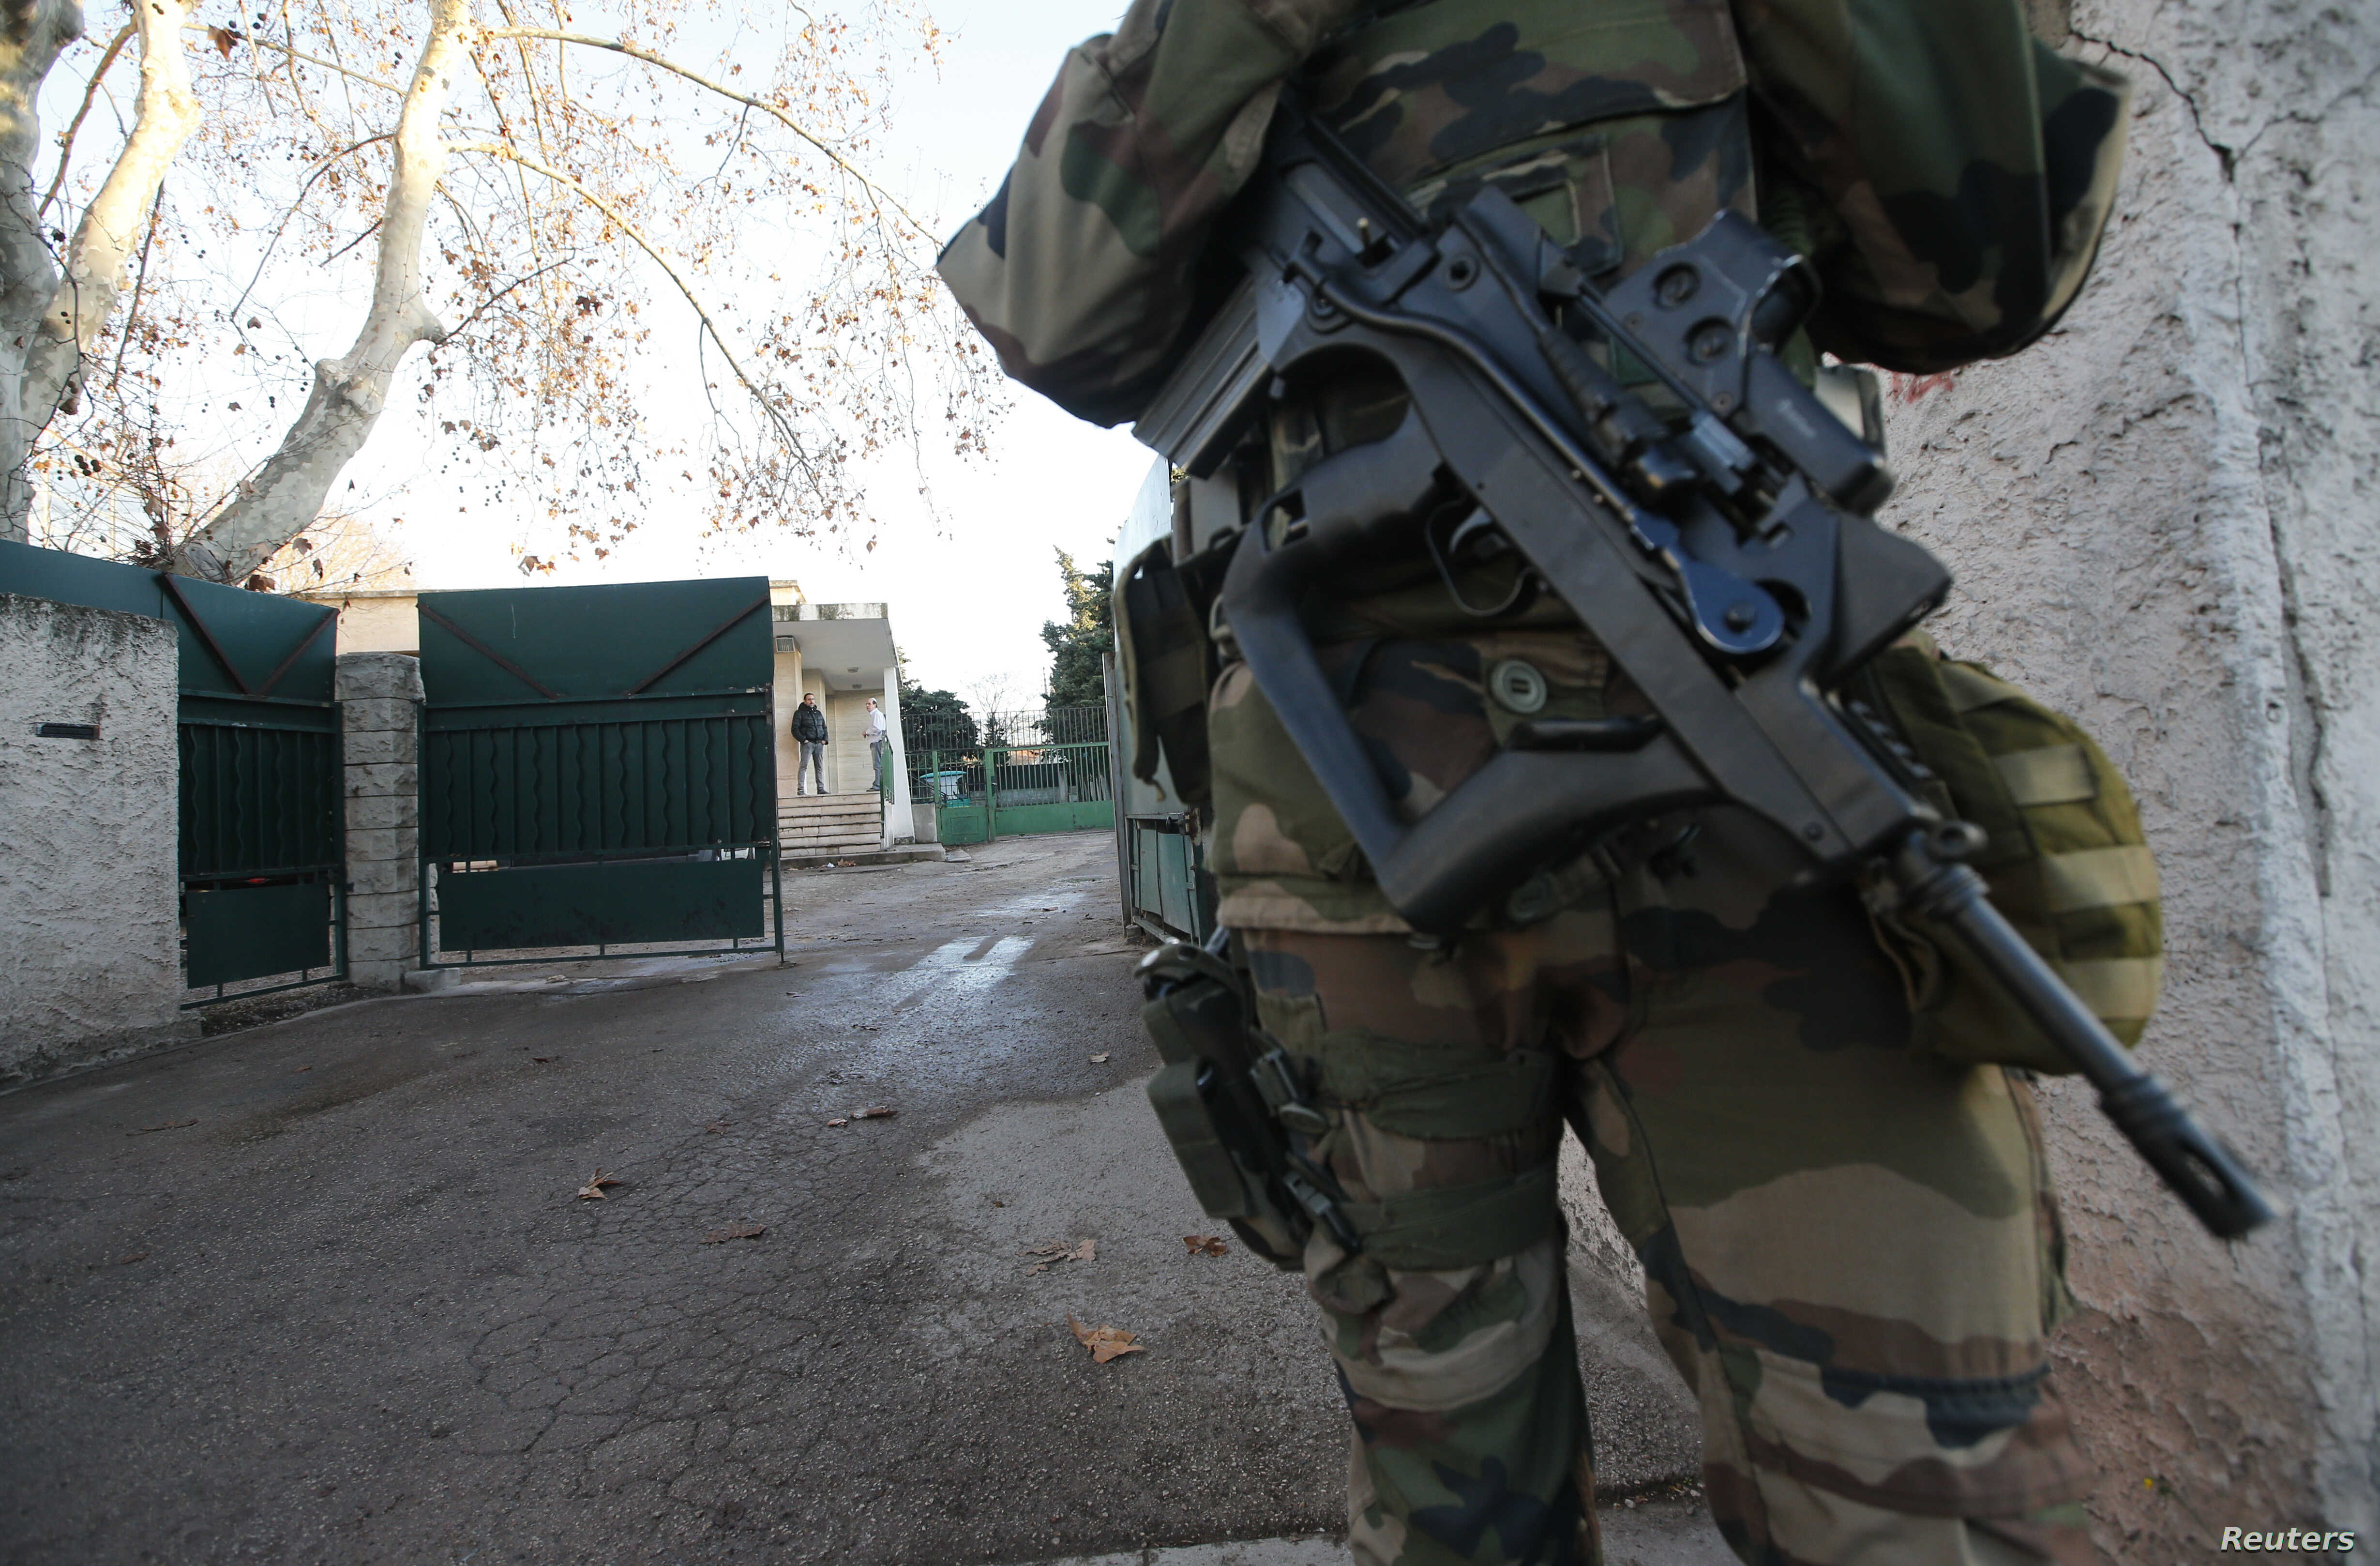 An armed French soldier secures the access to a Jewish school in Marseille's 9th district, France, Jan, 11, 2016, after a teenager, armed with a machete and a knife, wounded a teacher slightly before being stopped and arrested.